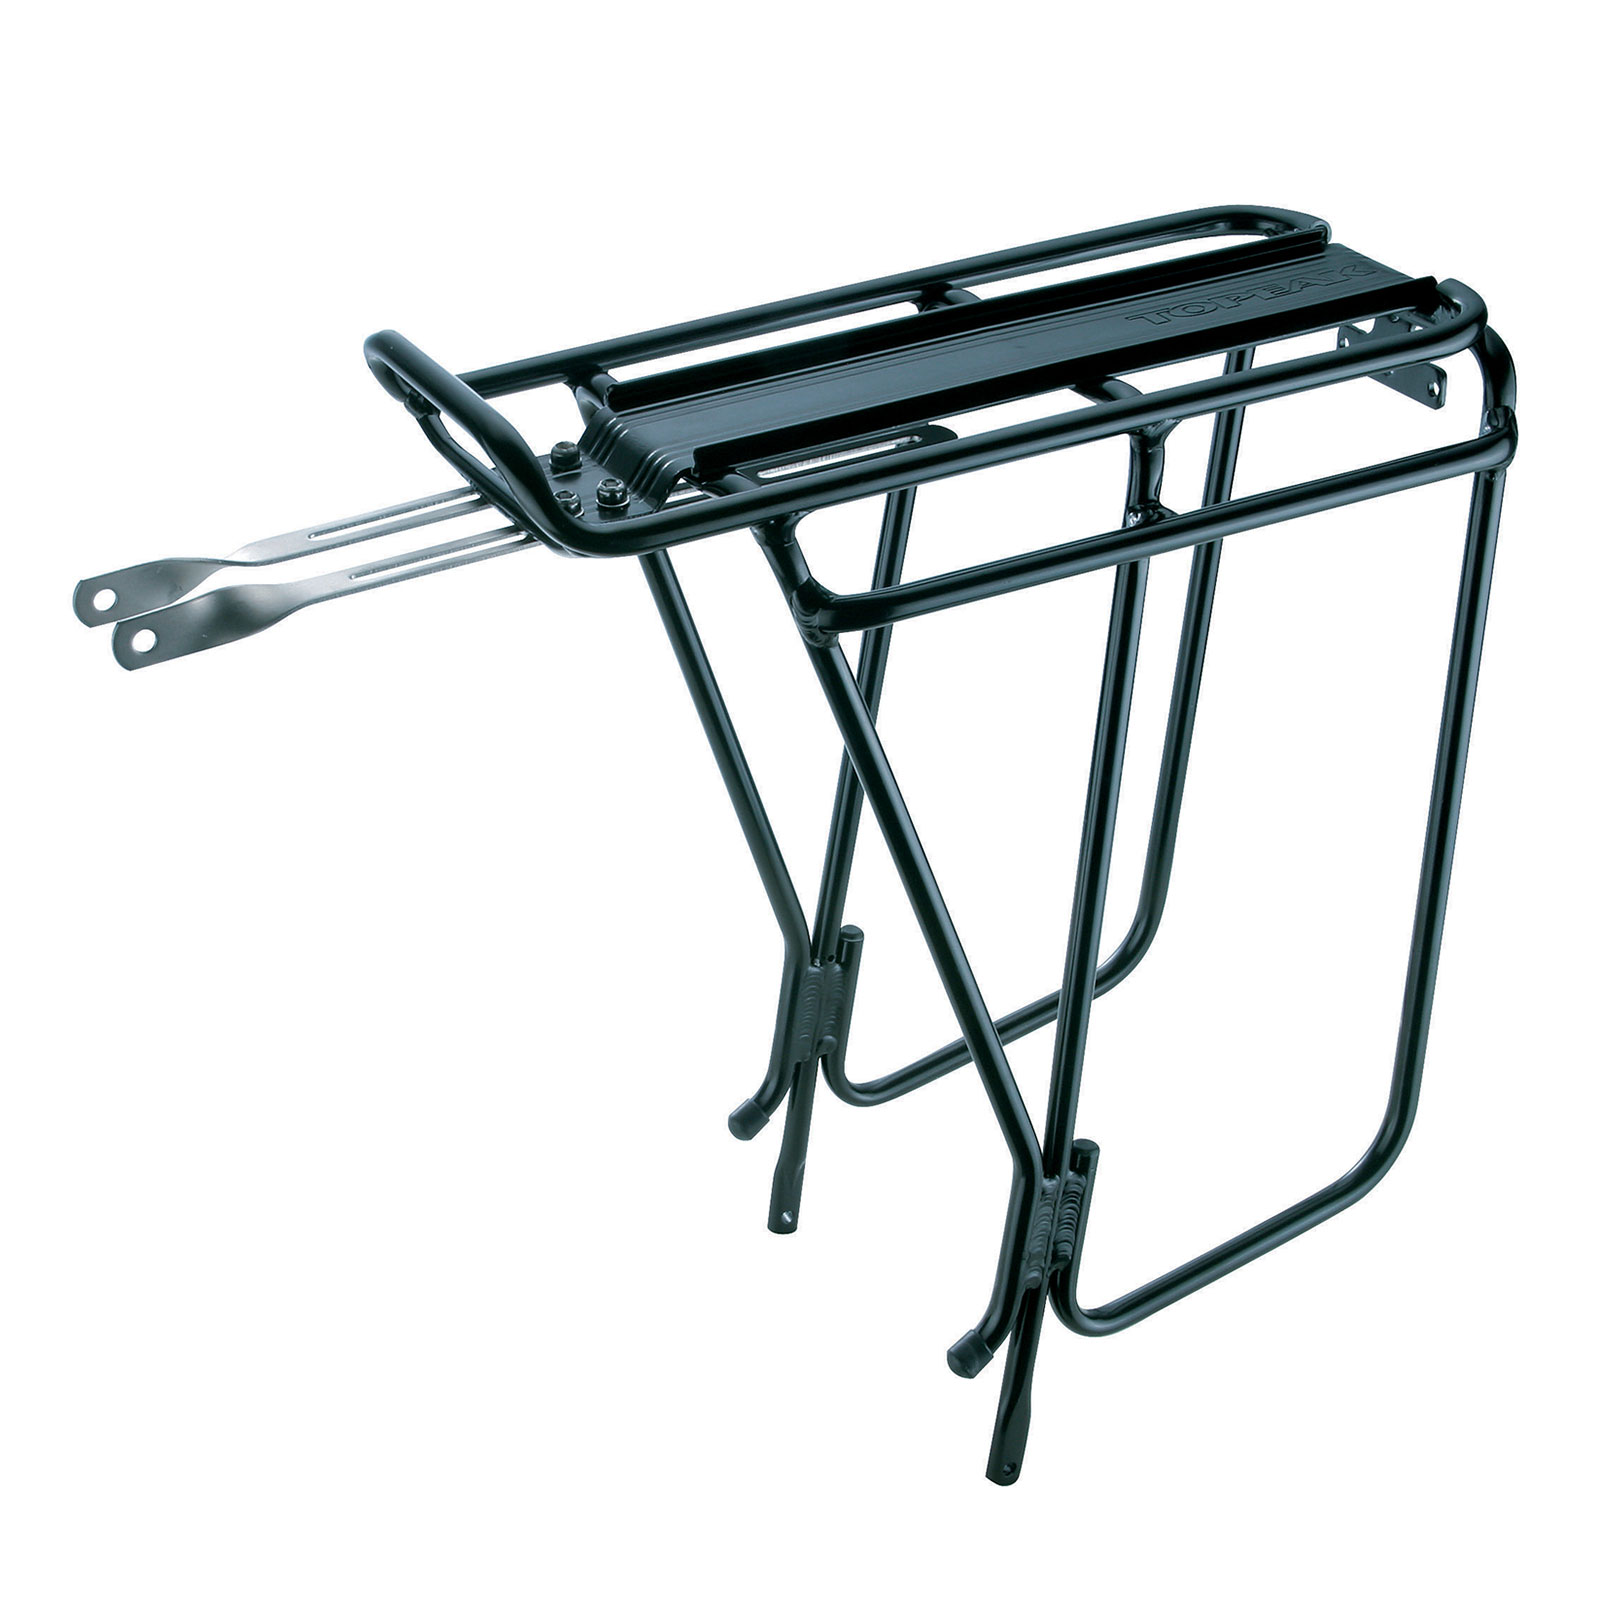 Topeak Super Tourist DX Tubular Rear Rack (w/o Spring) For 26, 27.5 (650B), 700c